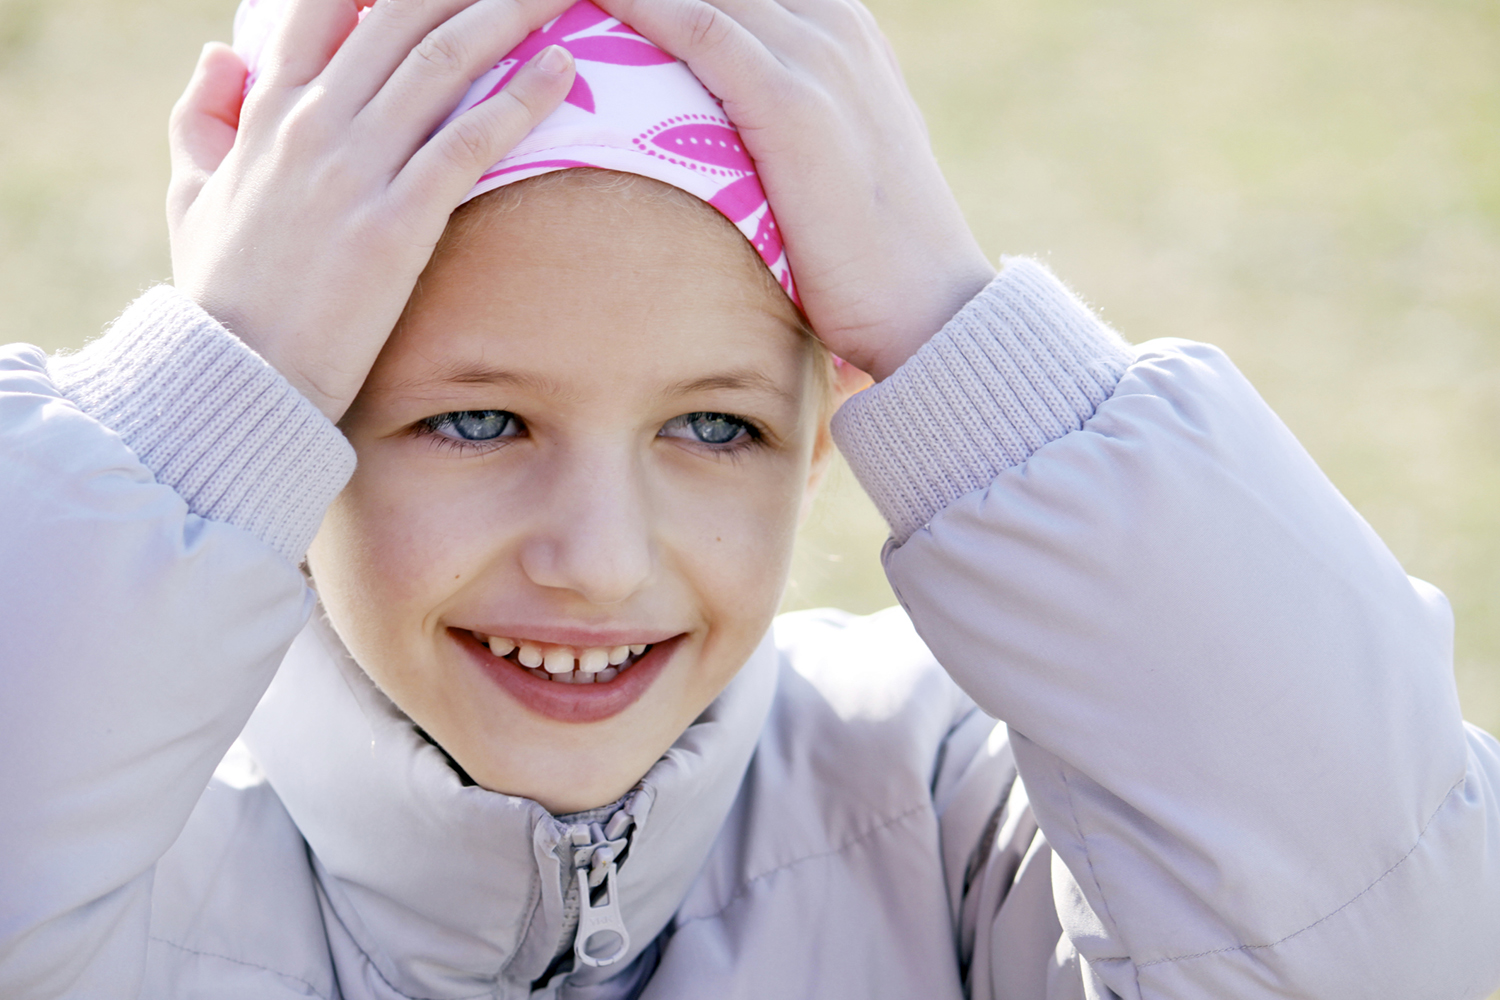 Preventing Cancer in Children